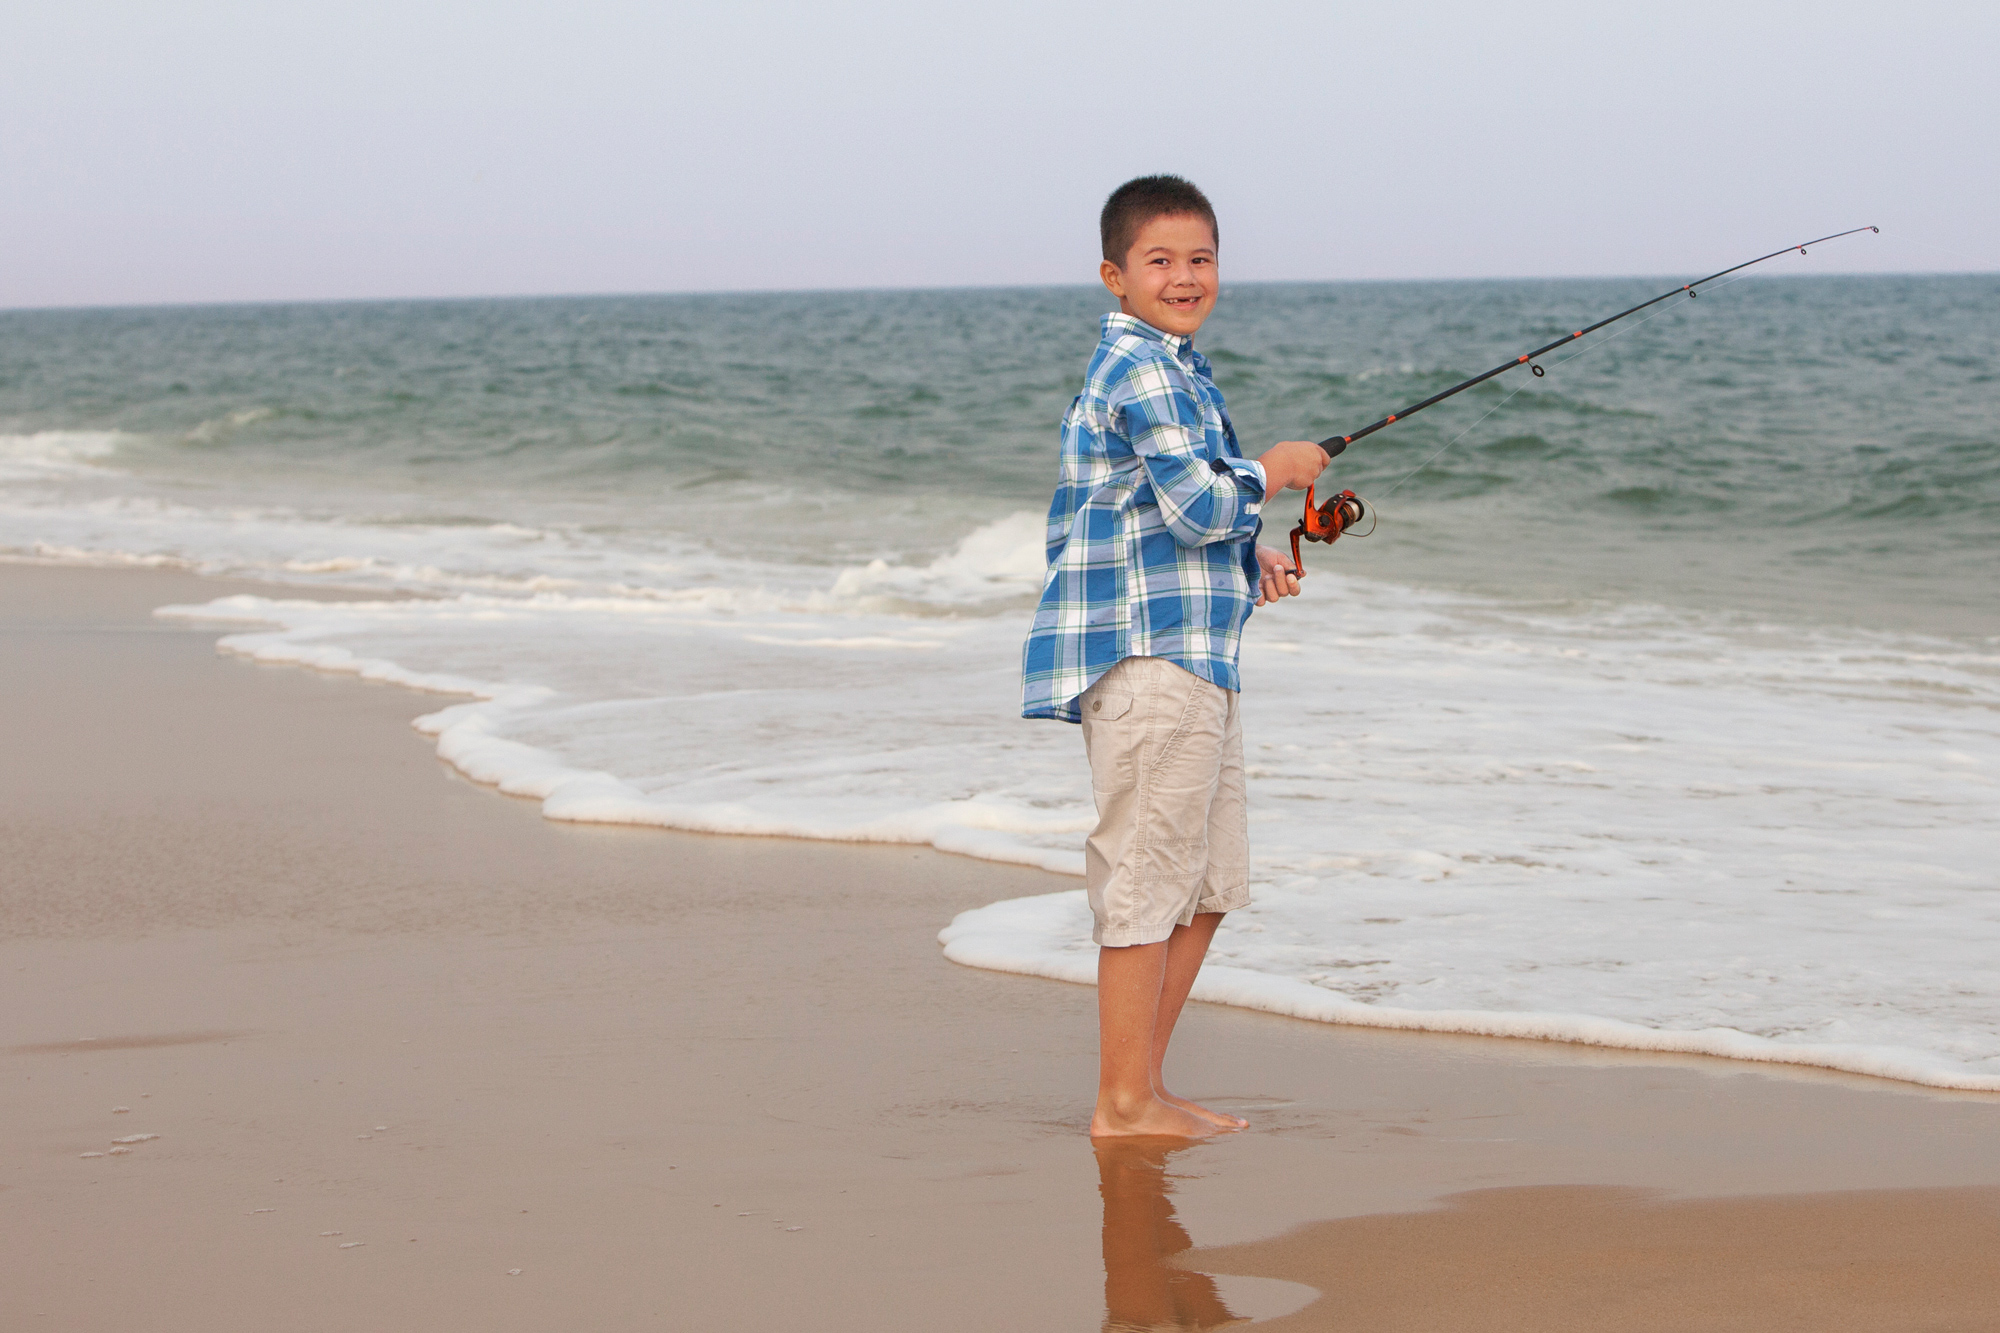 Westhampton Fishing Session